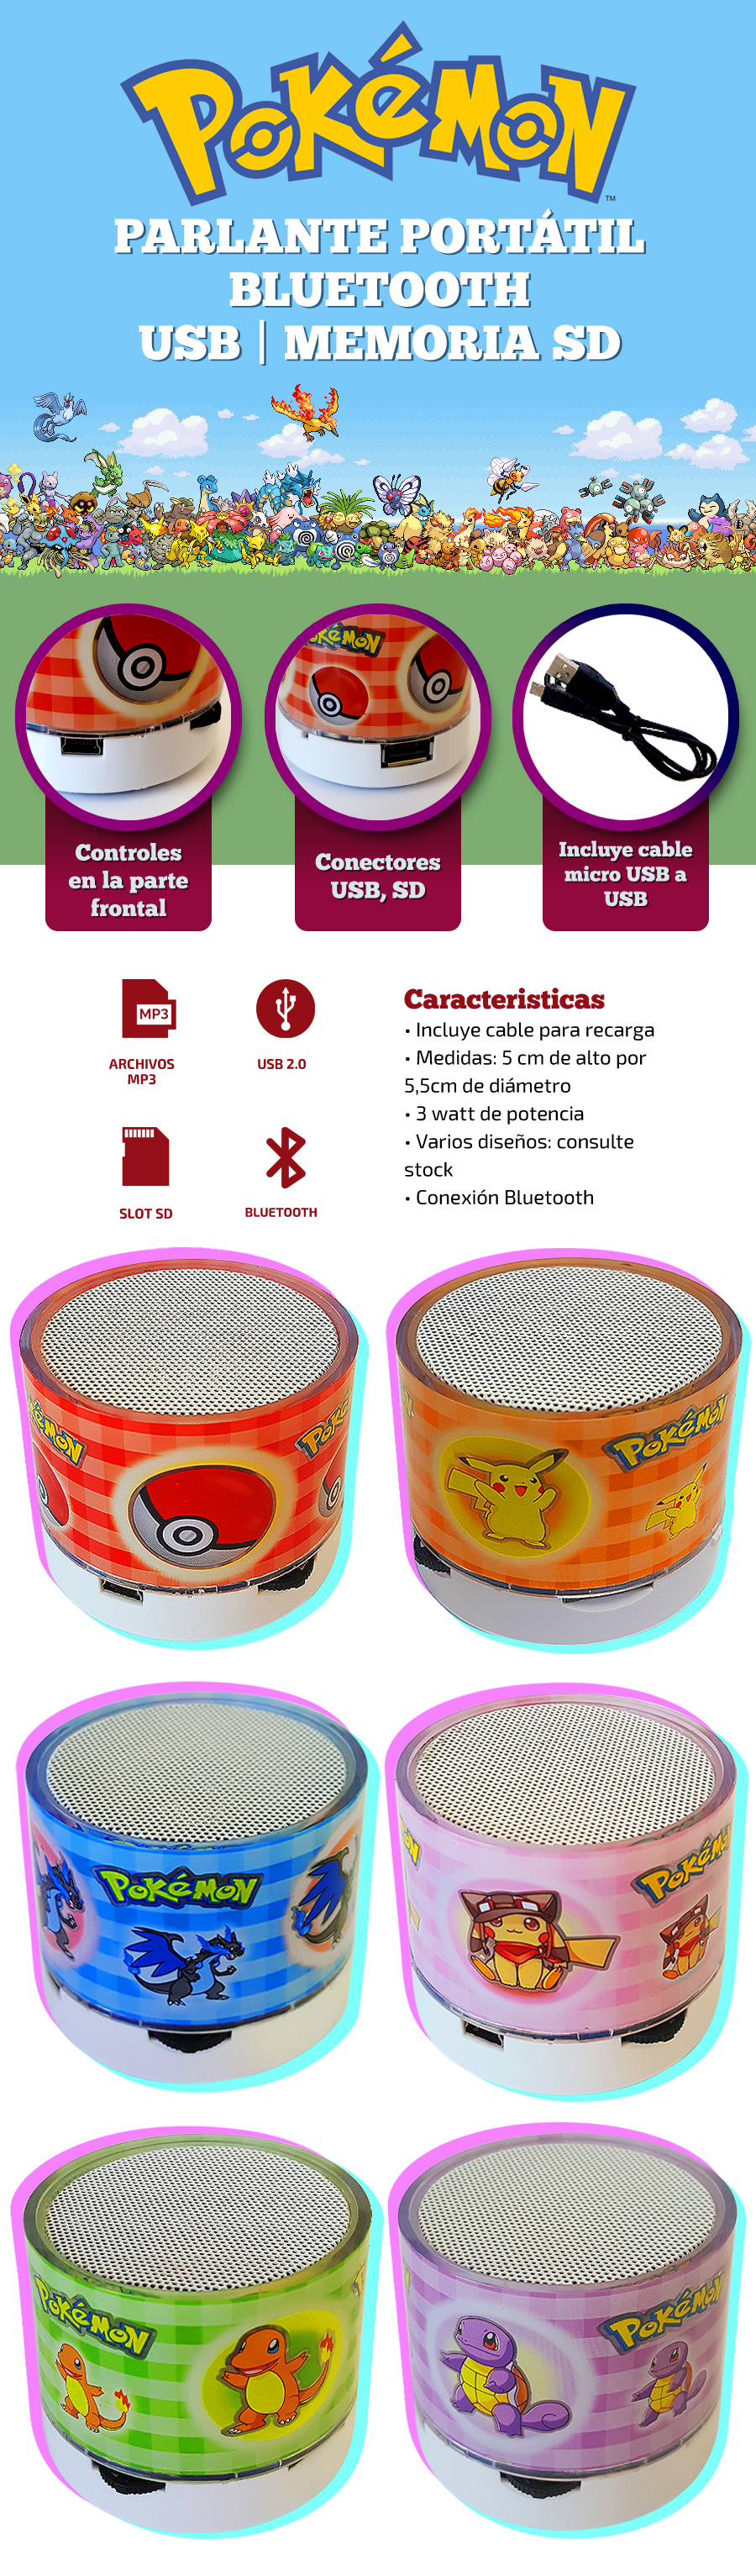 Parlante Portatil Bluetooth Pokemon | FM/SD |